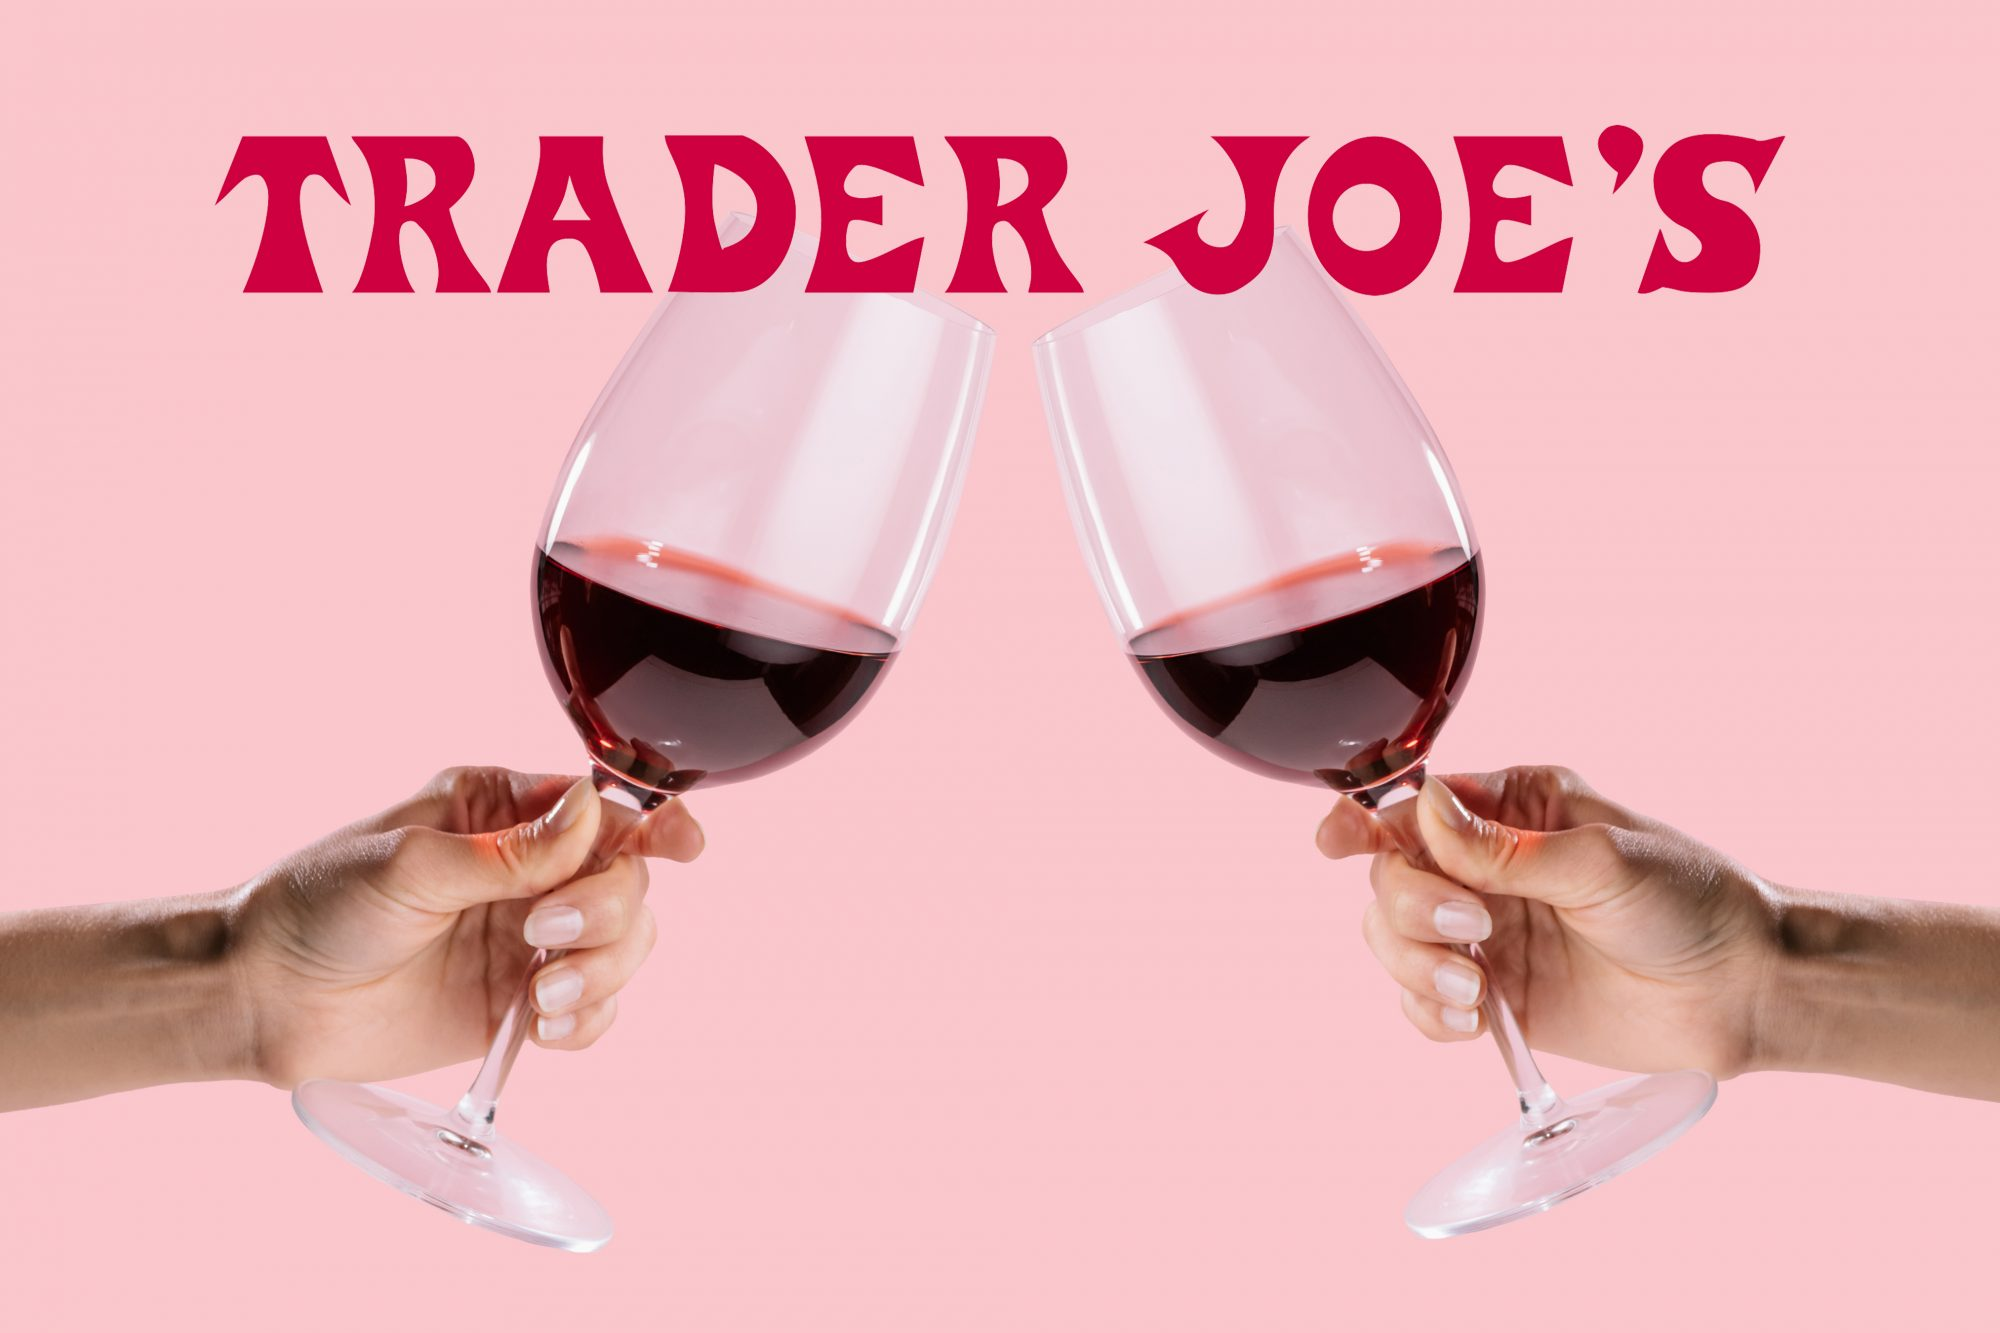 The-#1-Wine-to-Buy-This-Fall-at-Trader-Joes-According-to-Employees-GettyImages-586105380-AdobeStock_228275767